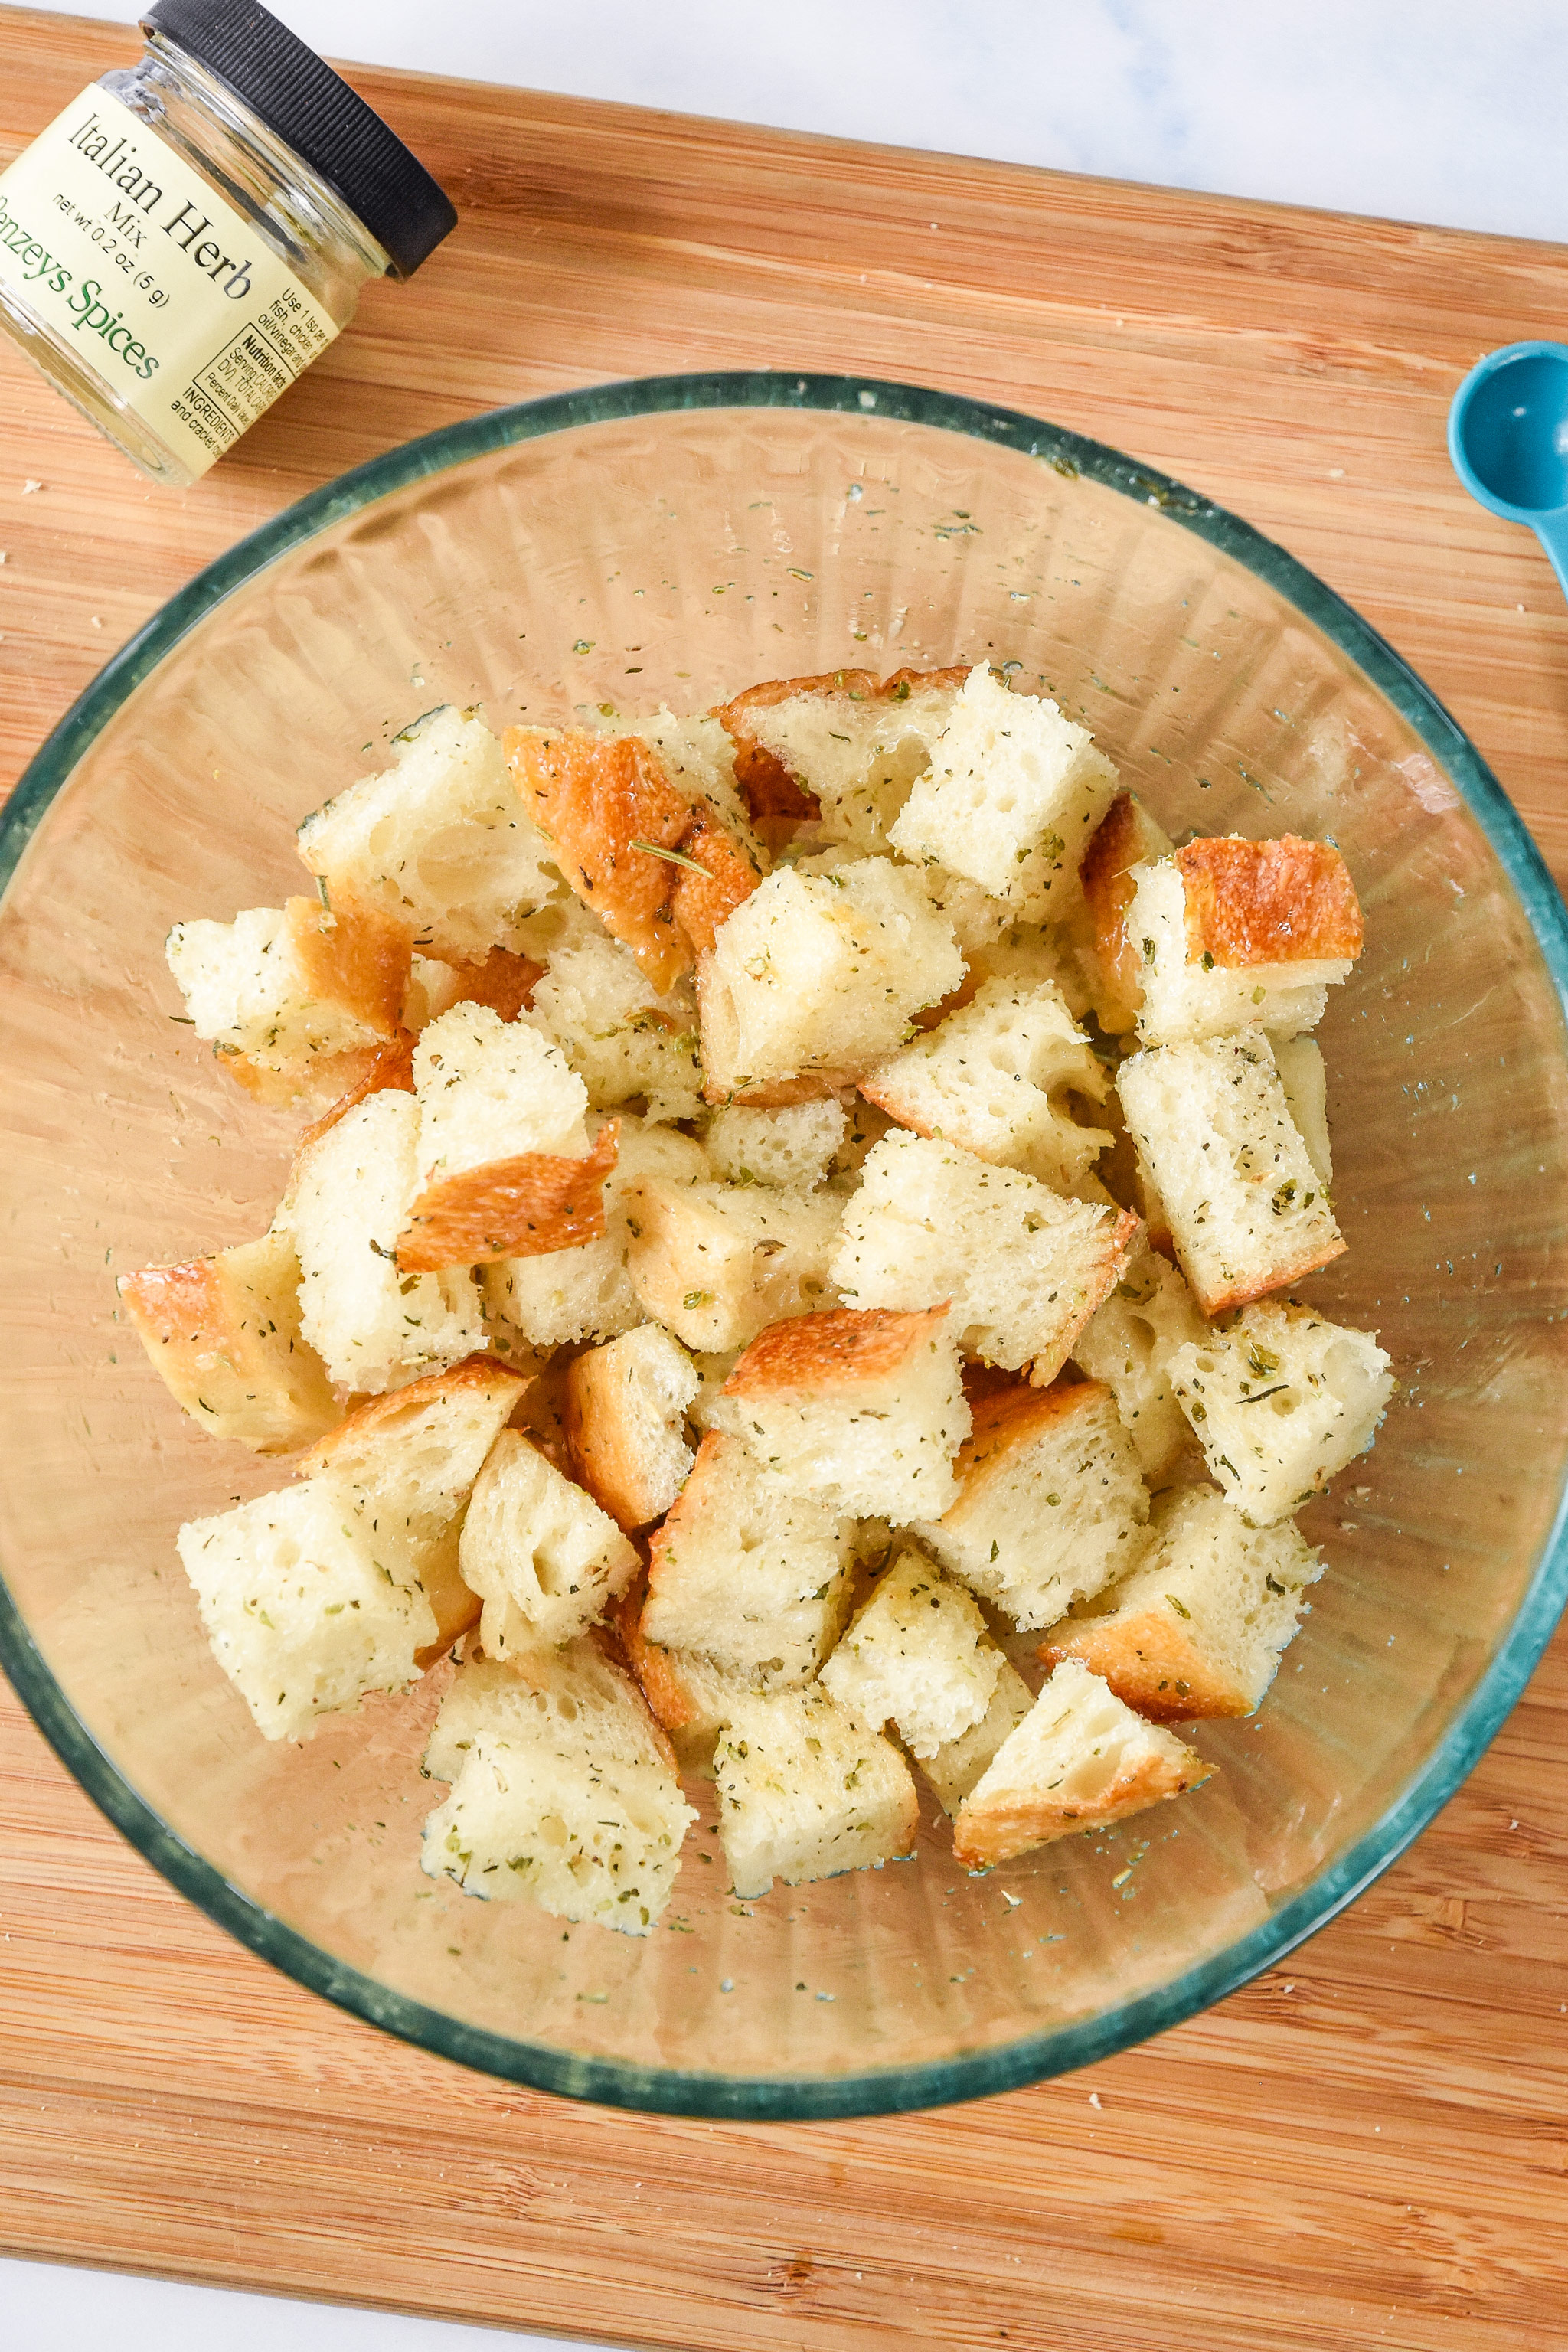 bread cubes in a bowl prepared to make croutons.